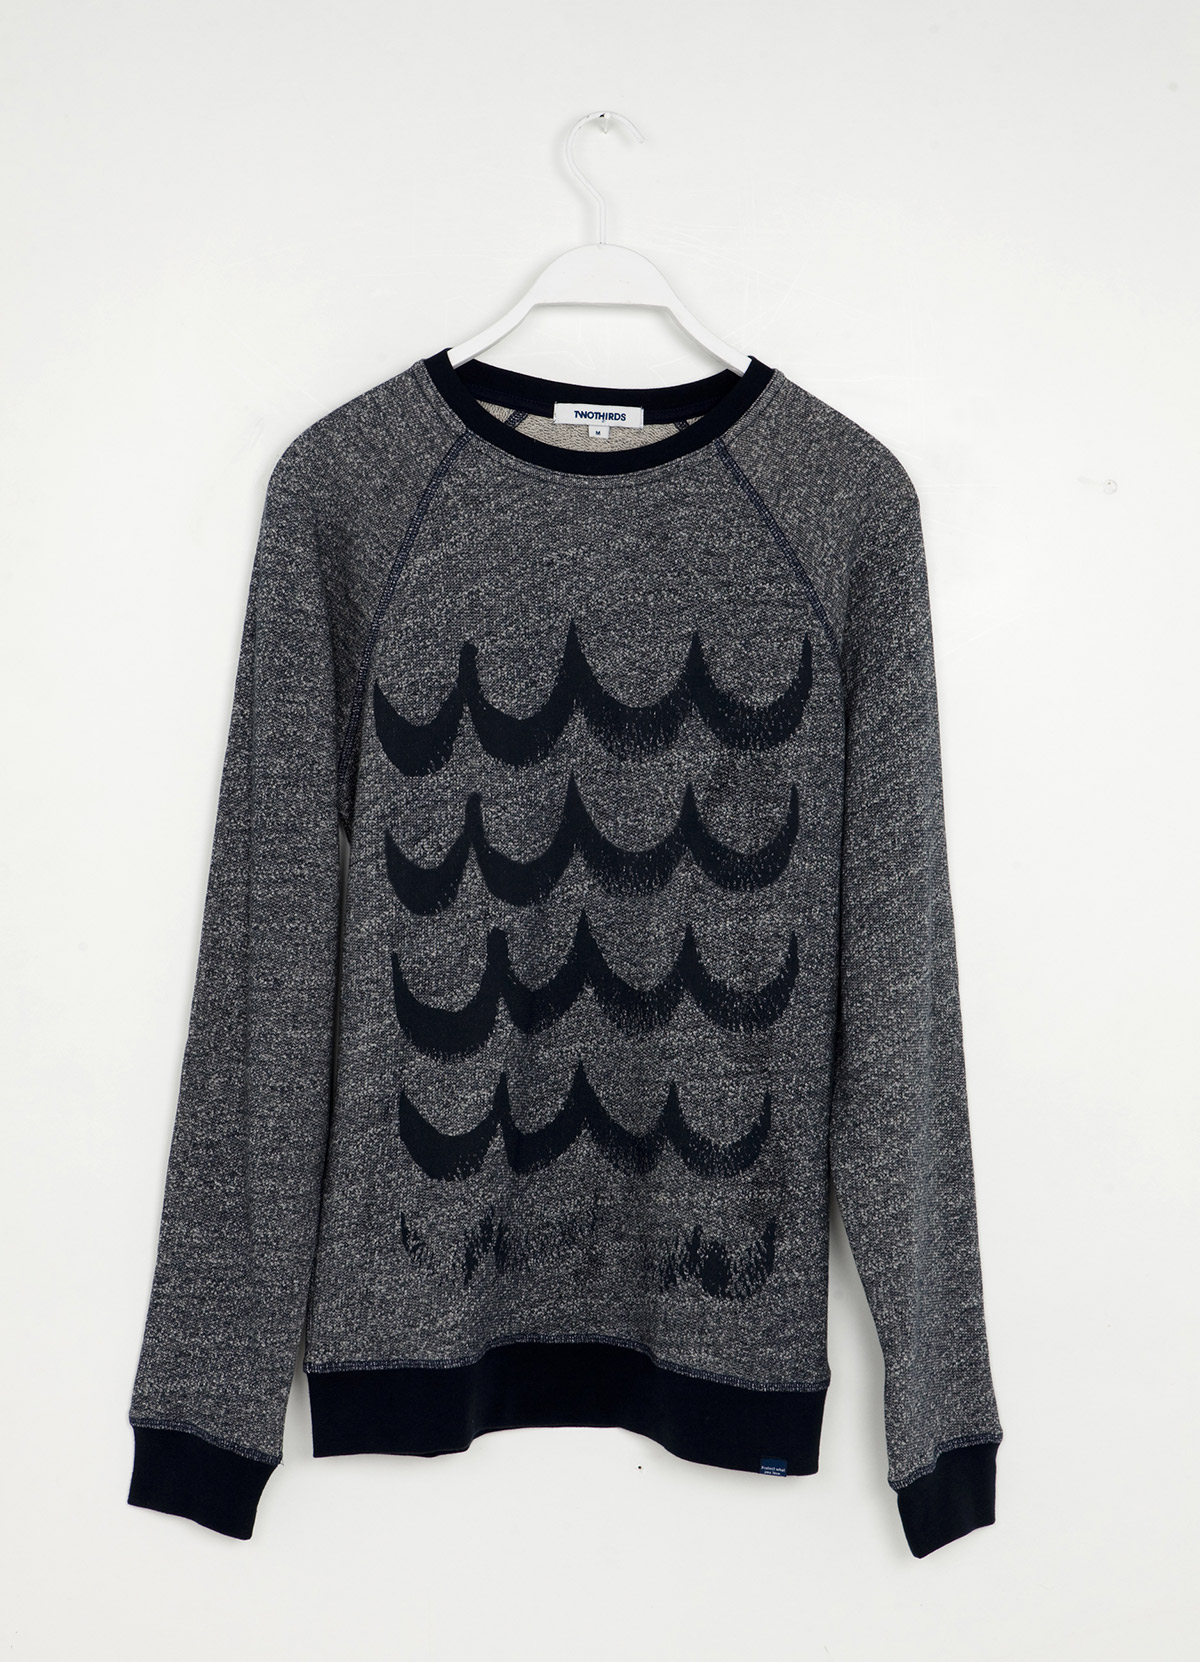 TwoThirds Emil Kozak sea you soon capsule collection sweatshirt waves